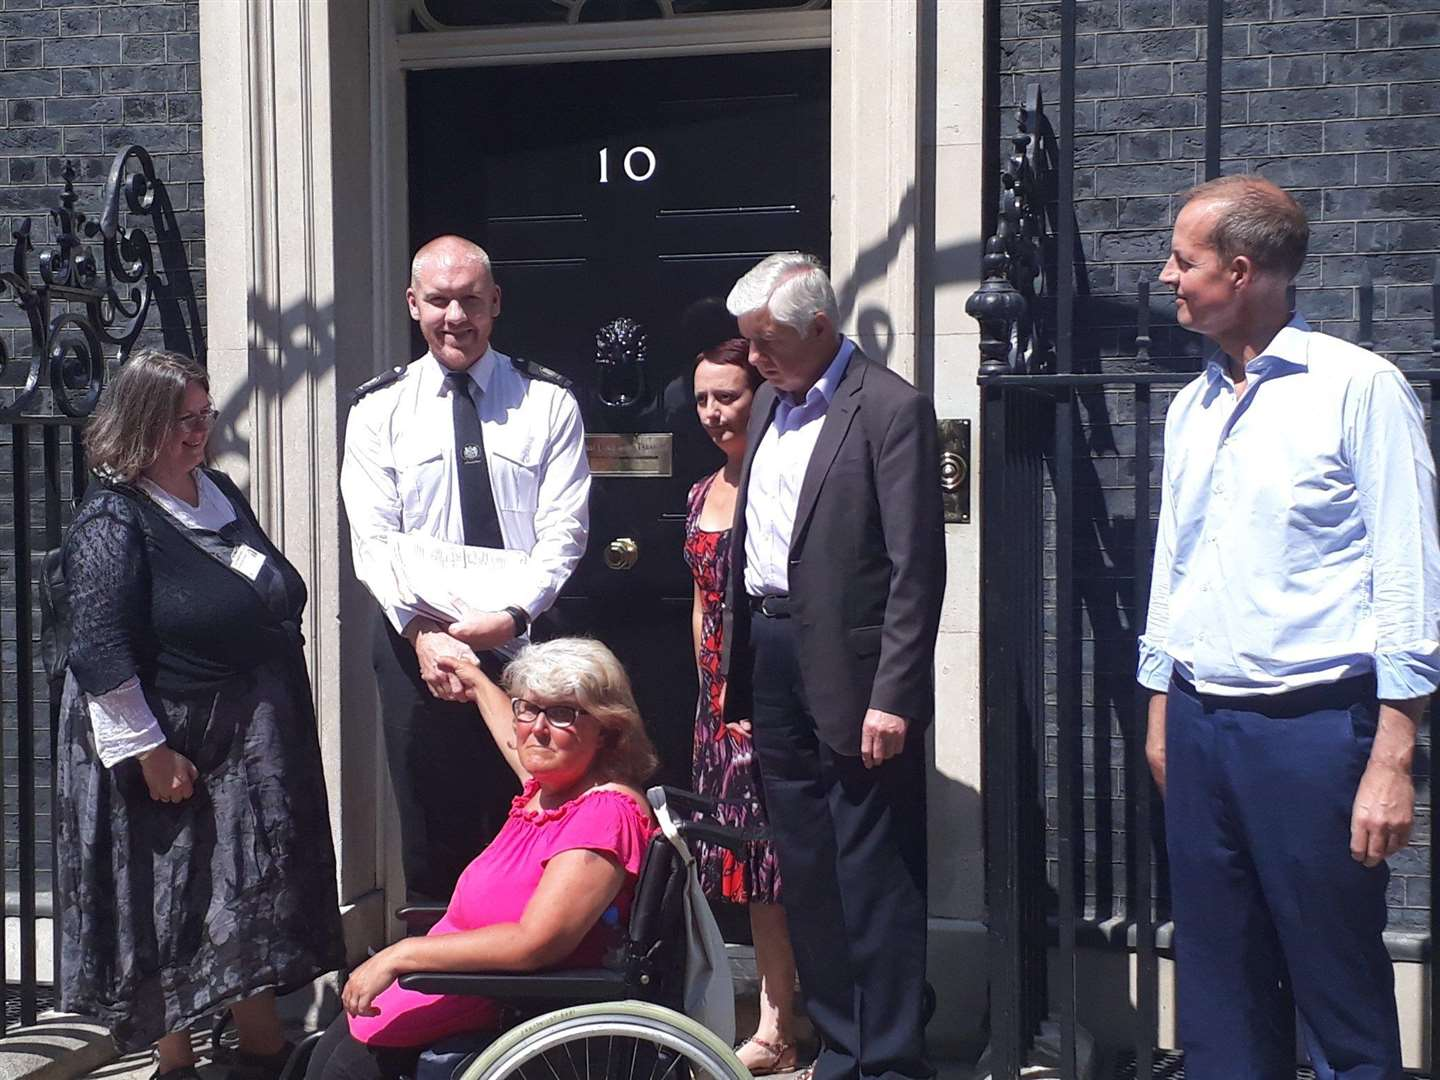 Charmaine Morgan, chair of SOS Grantham Hospital, Coun Ray Wootten, Sarah Stock of Fighting 4 Life Lincolnshire, Grantham MP Nick Boles and Jayne Dawson outside 10 Downing Street this afternoon. (2920505)